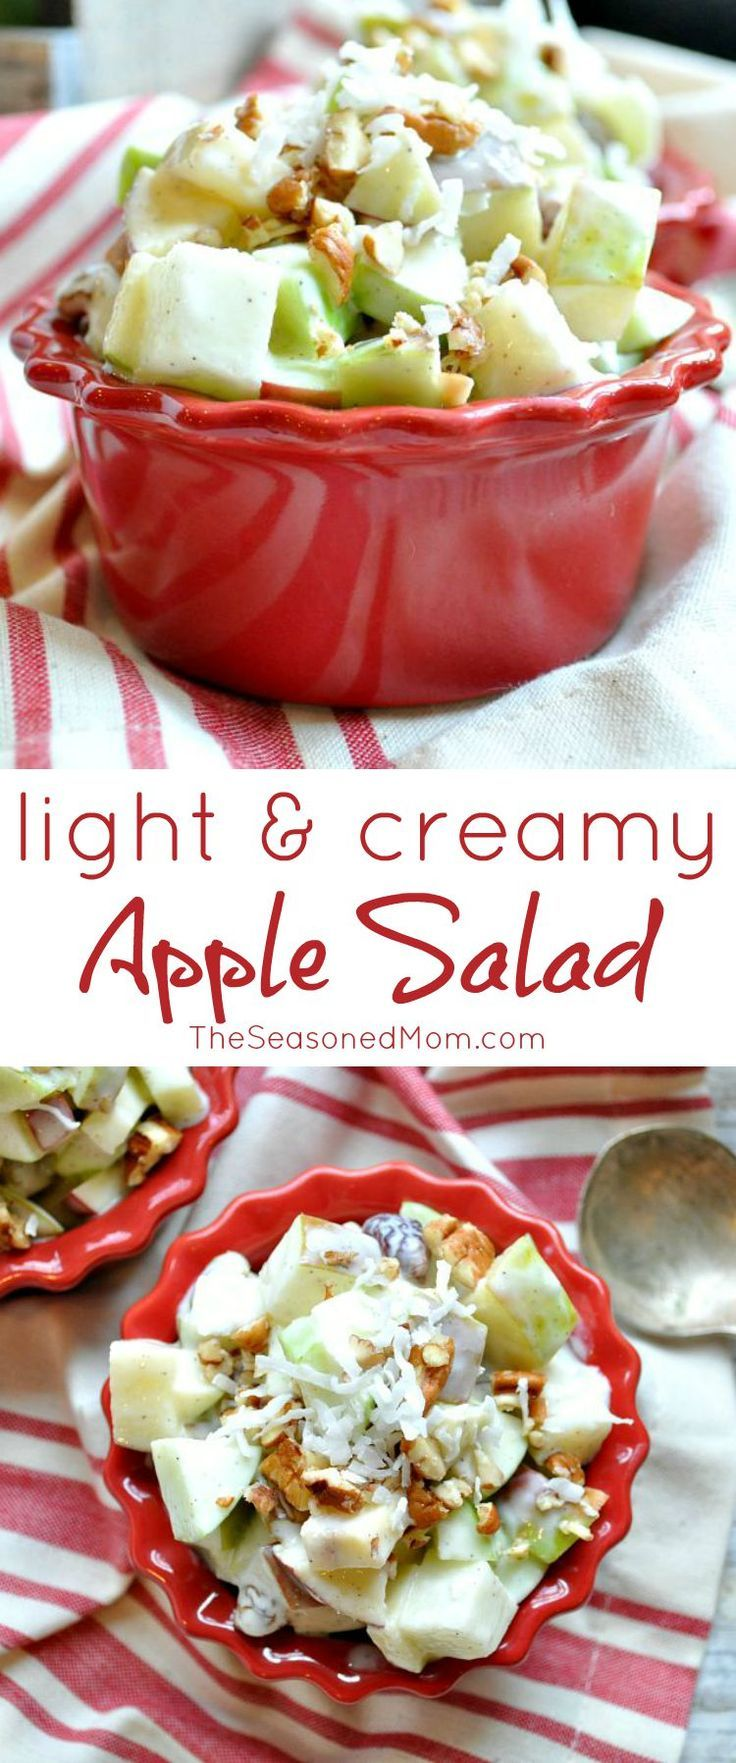 Need a quick and healthy side dish, breakfast, or snack this season? Packed full of clean eating ingredients, this Light & Creamy Apple Salad is ready in about 10 minutes!